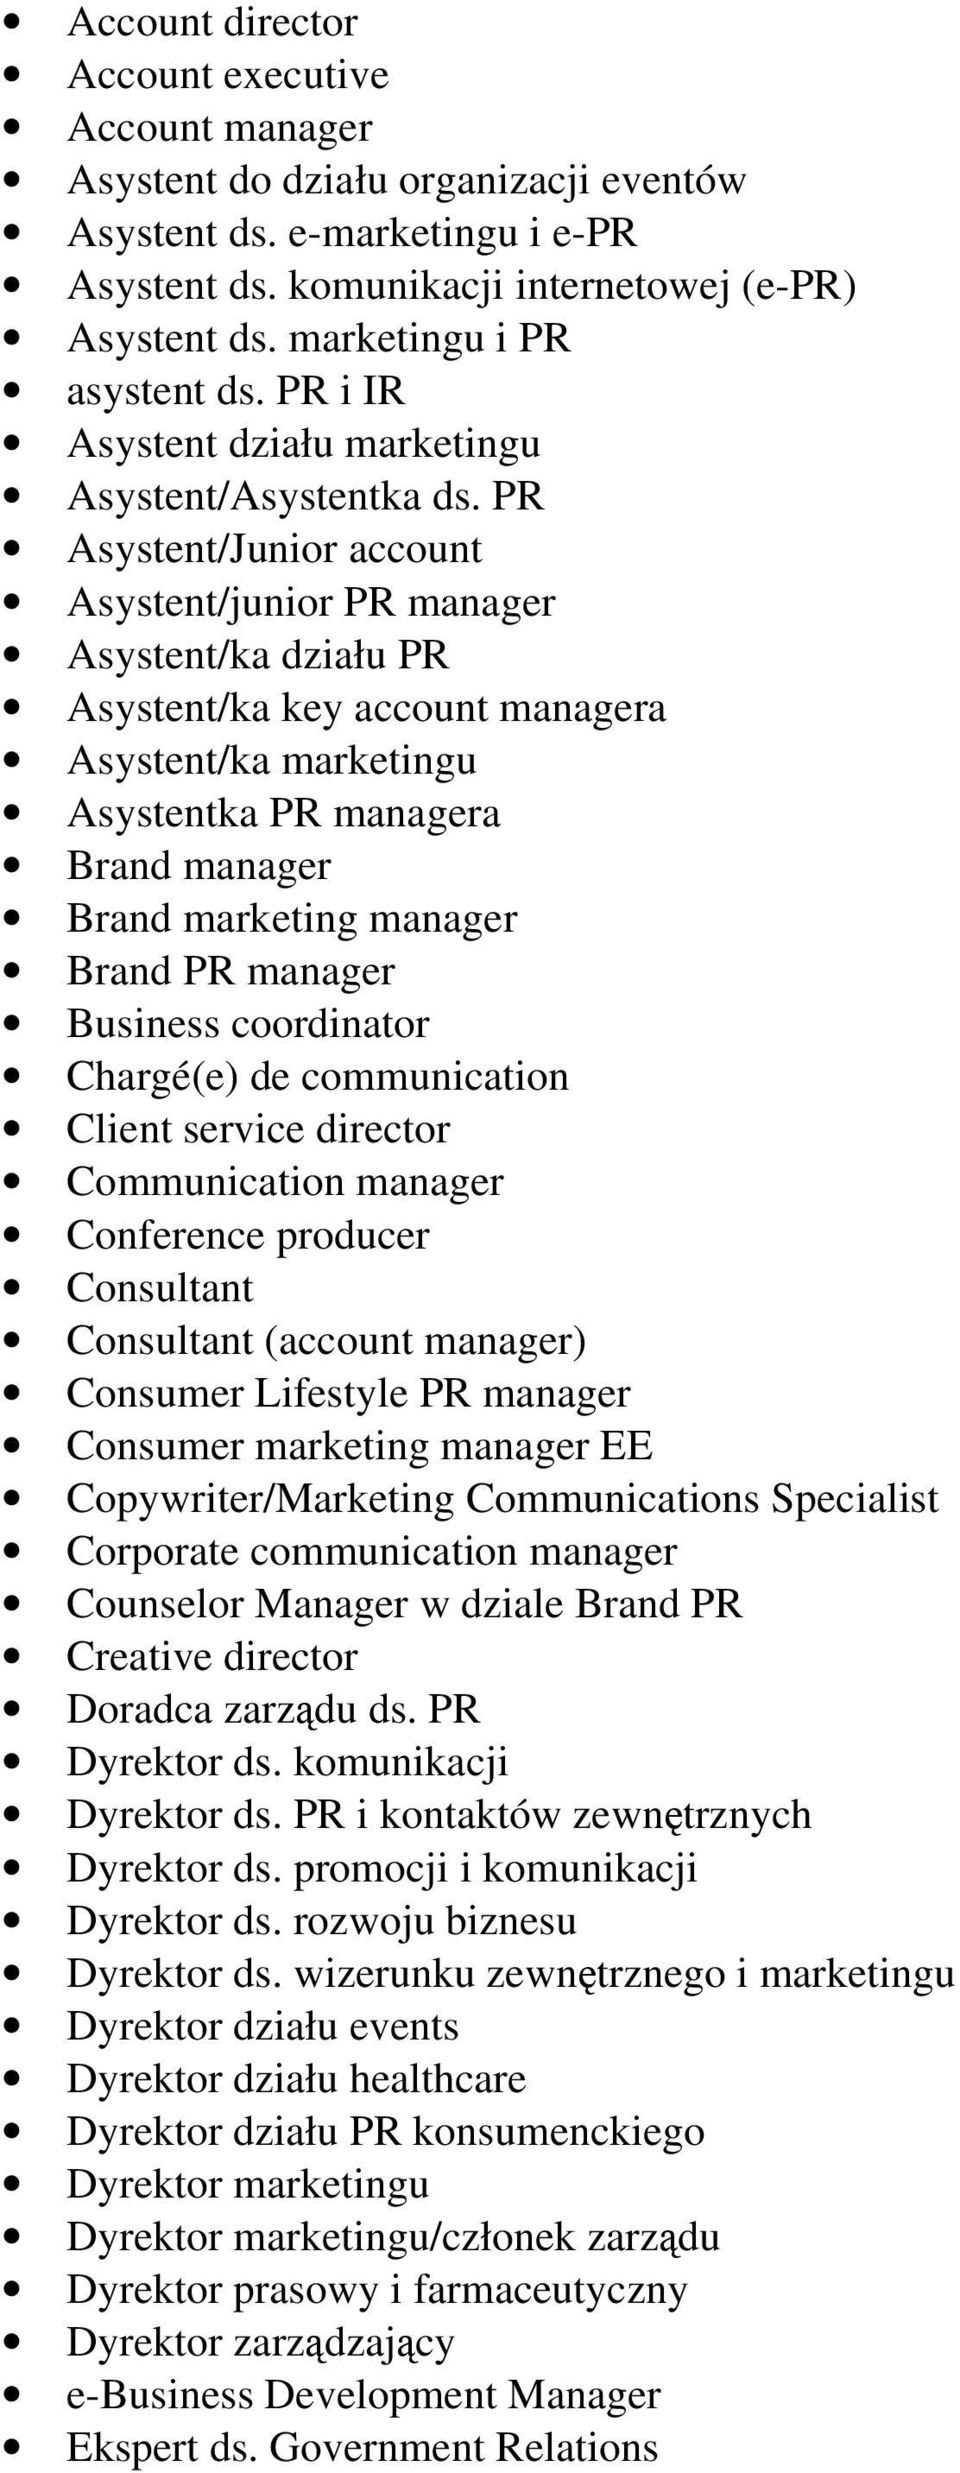 PR Asystent/Junior account Asystent/junior PR manager Asystent/ka działu PR Asystent/ka key account managera Asystent/ka marketingu Asystentka PR managera Brand manager Brand marketing manager Brand